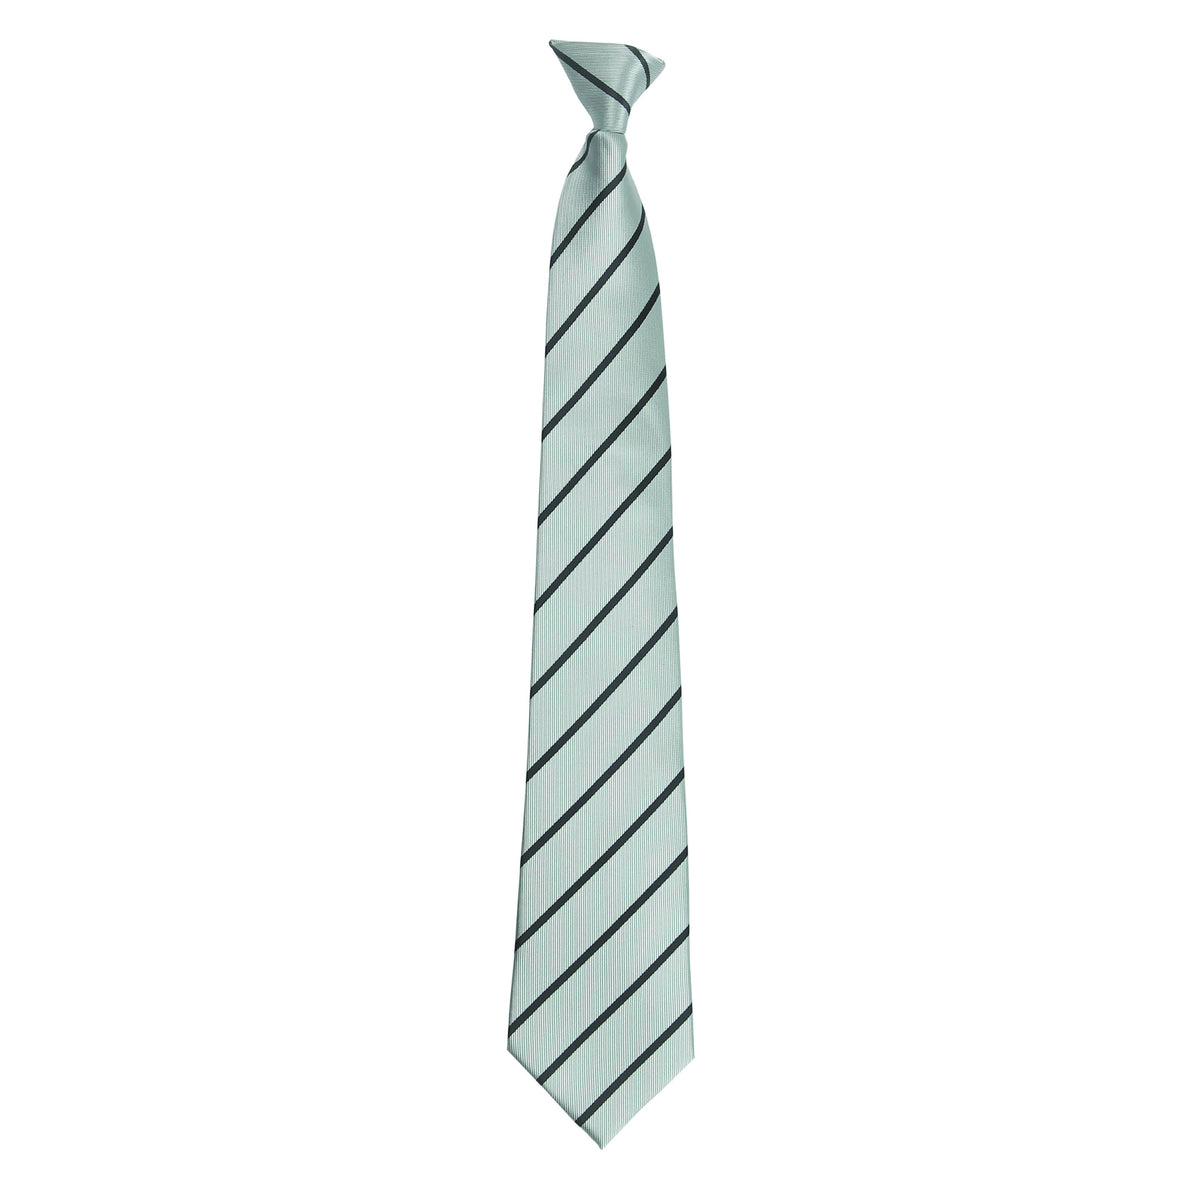 Premier Striped Ties - peterdrew.com  - 5